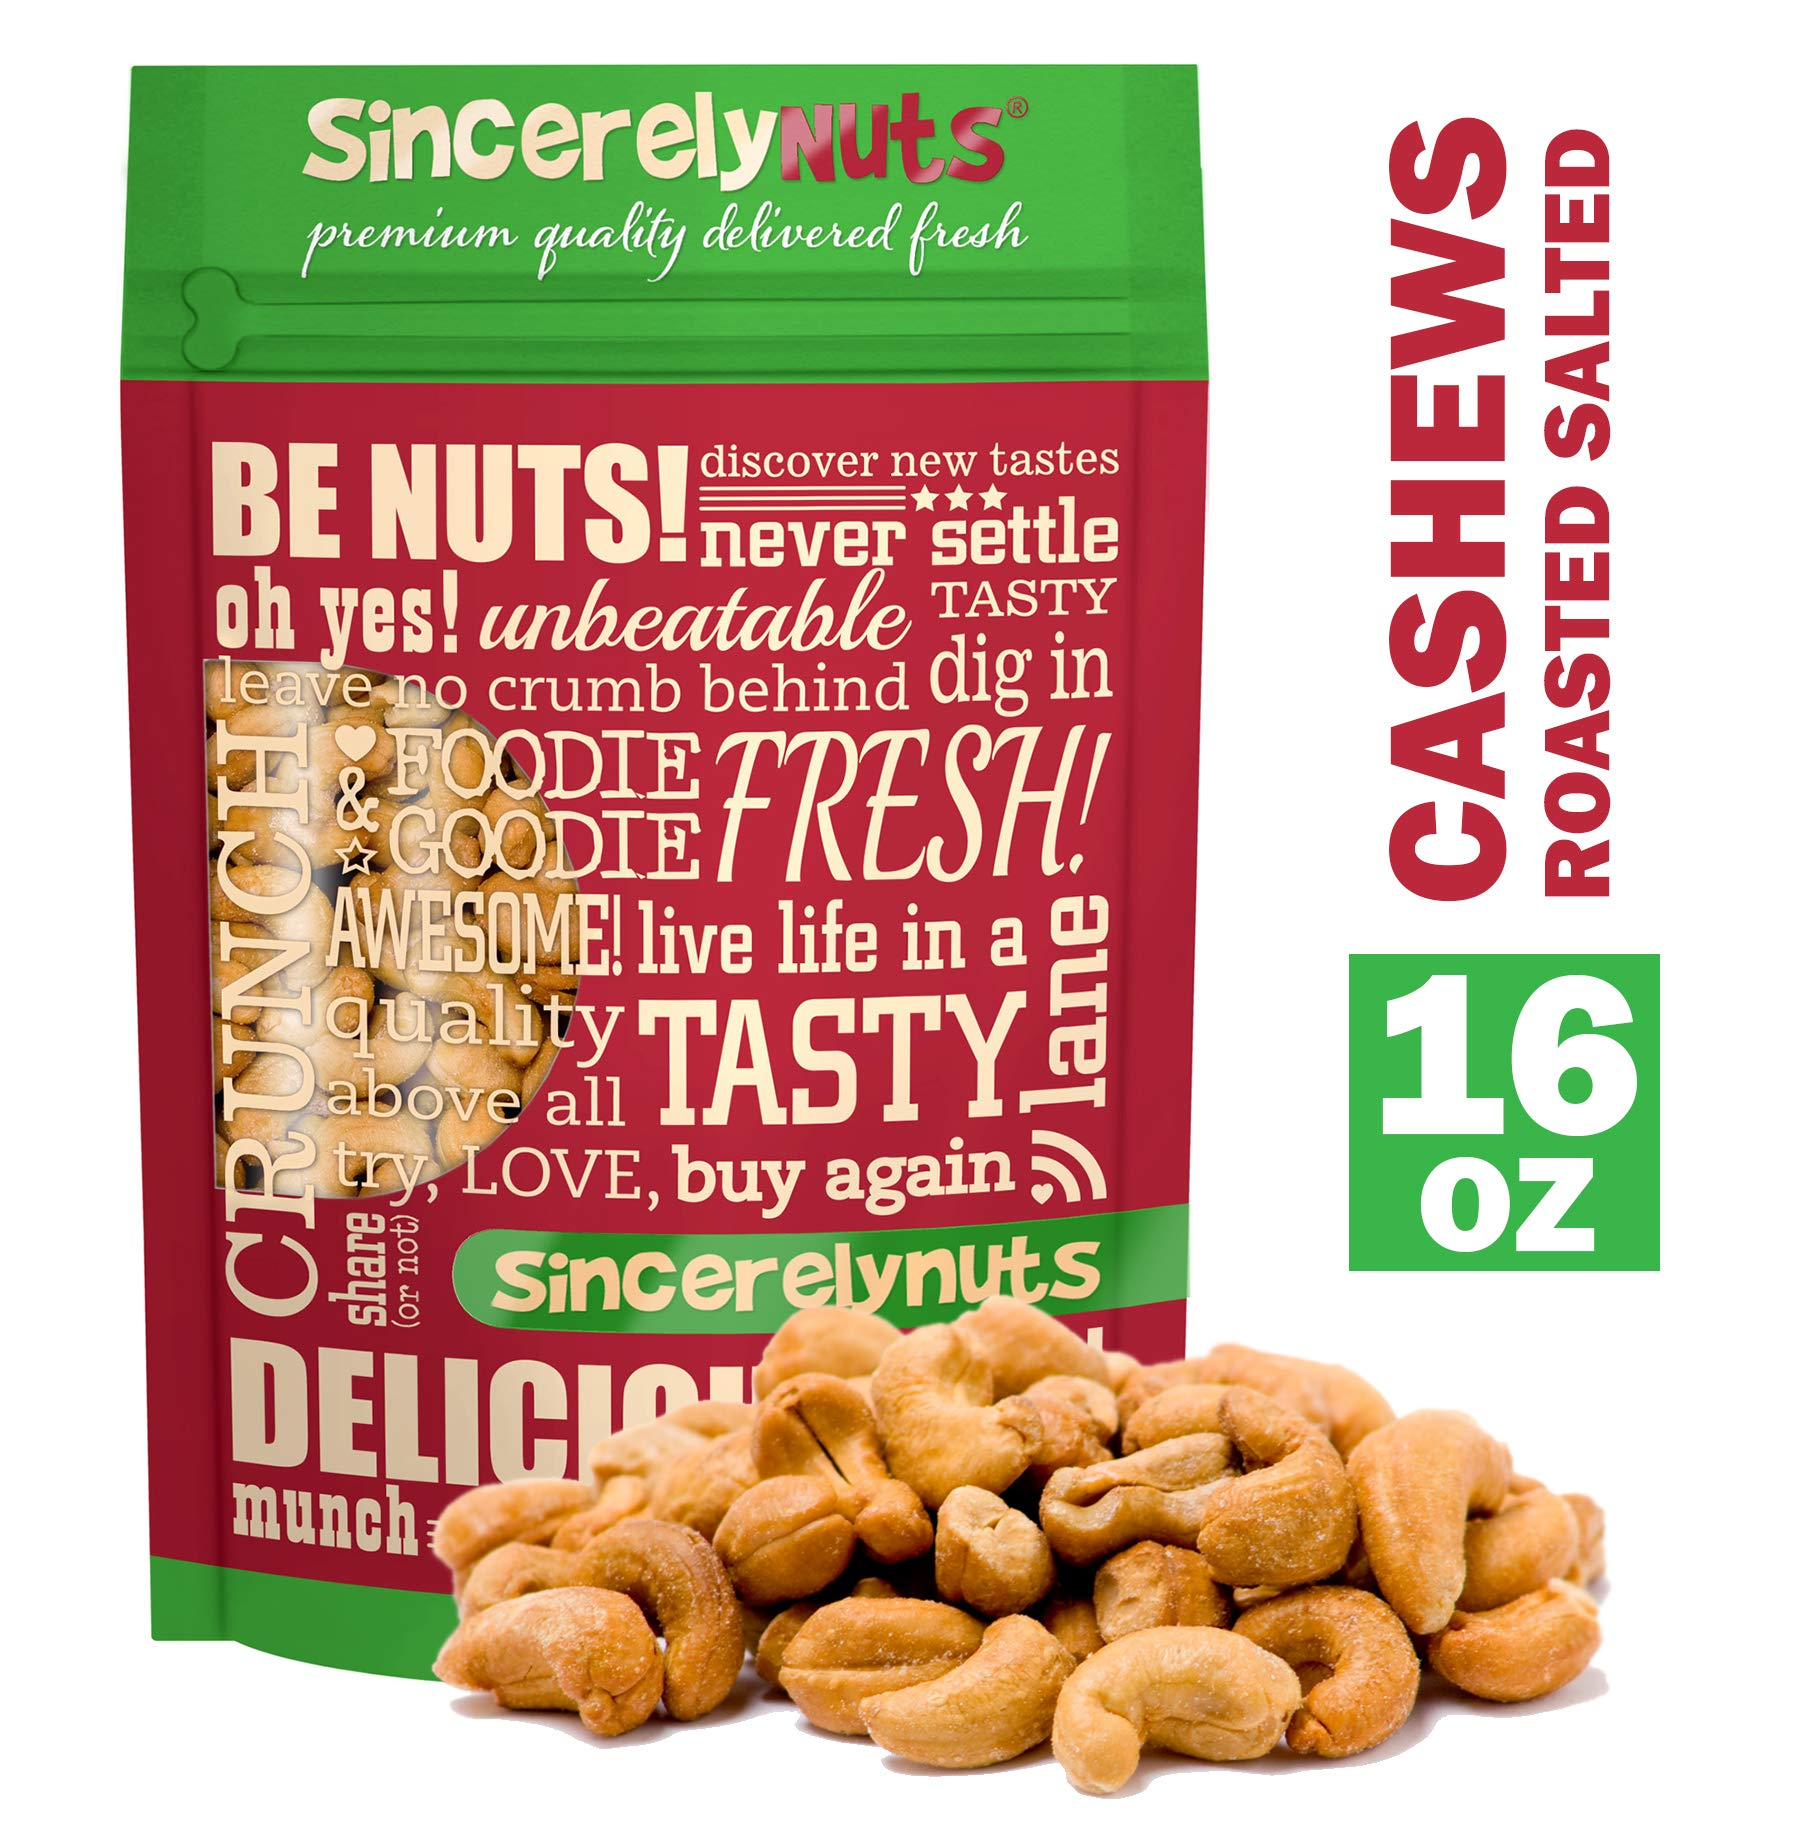 Sincerely Nuts - Whole Cashews Roasted and Salted | One Lb. Bag | Deluxe Kosher Snack Food | Healthy Source of Protein, Vitamin & Mineral Nutritional Content | Gourmet Quality Vegan Cashew Nut by Sincerely Nuts